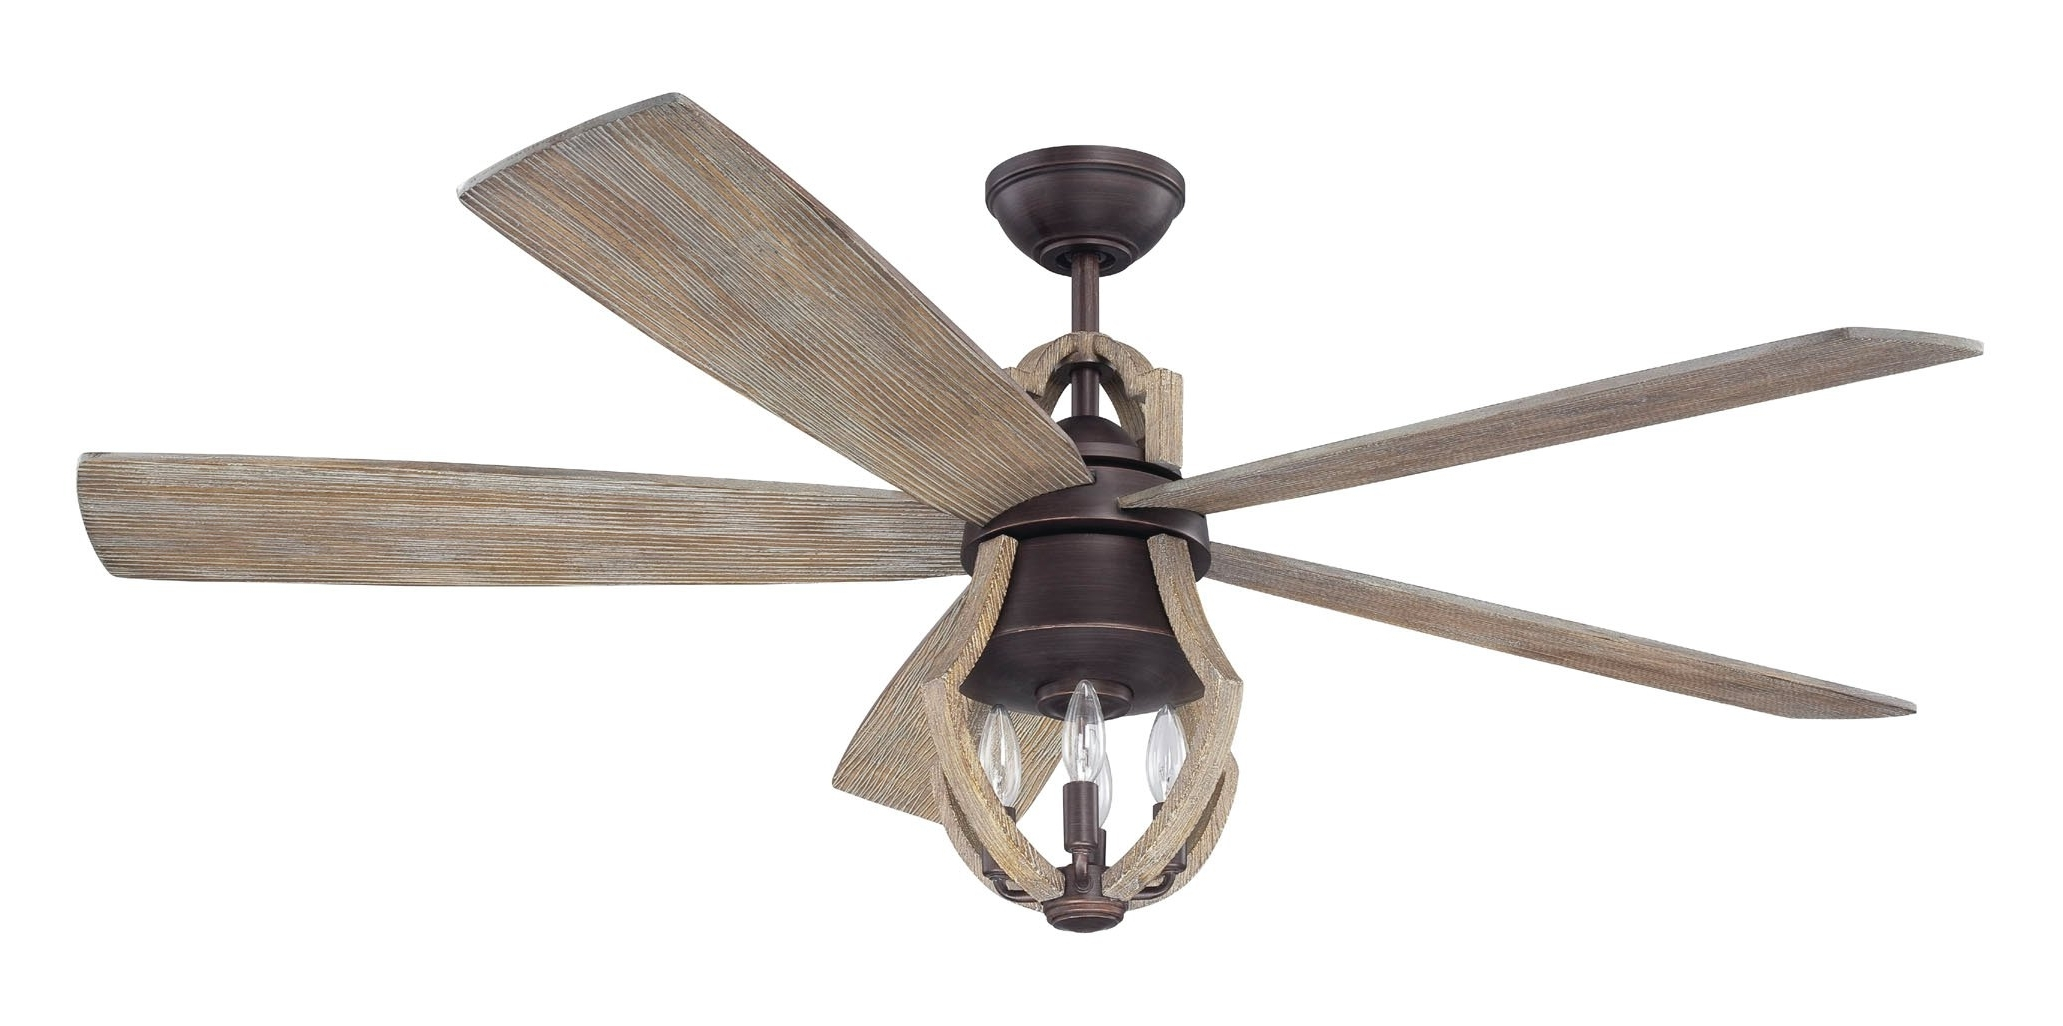 Joss & Main Throughout Current Outdoor Ceiling Fans With Removable Blades (View 10 of 20)